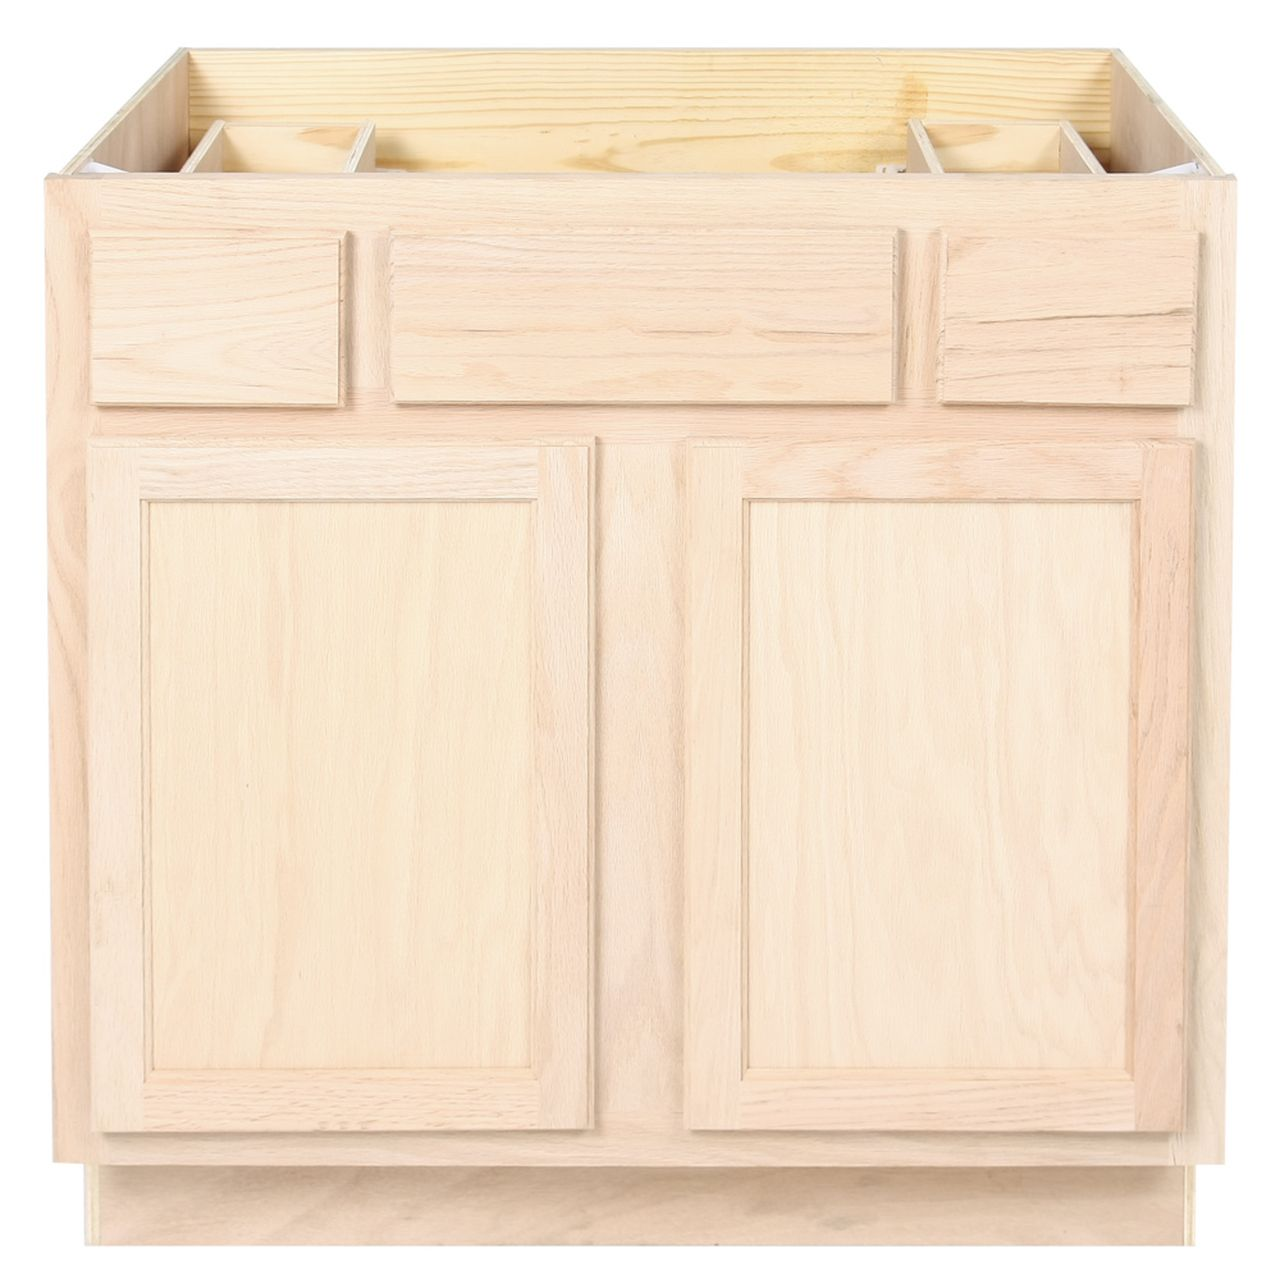 Best Unfinished Bathroom Vanity Sink Base Cabinet 36 640 x 480